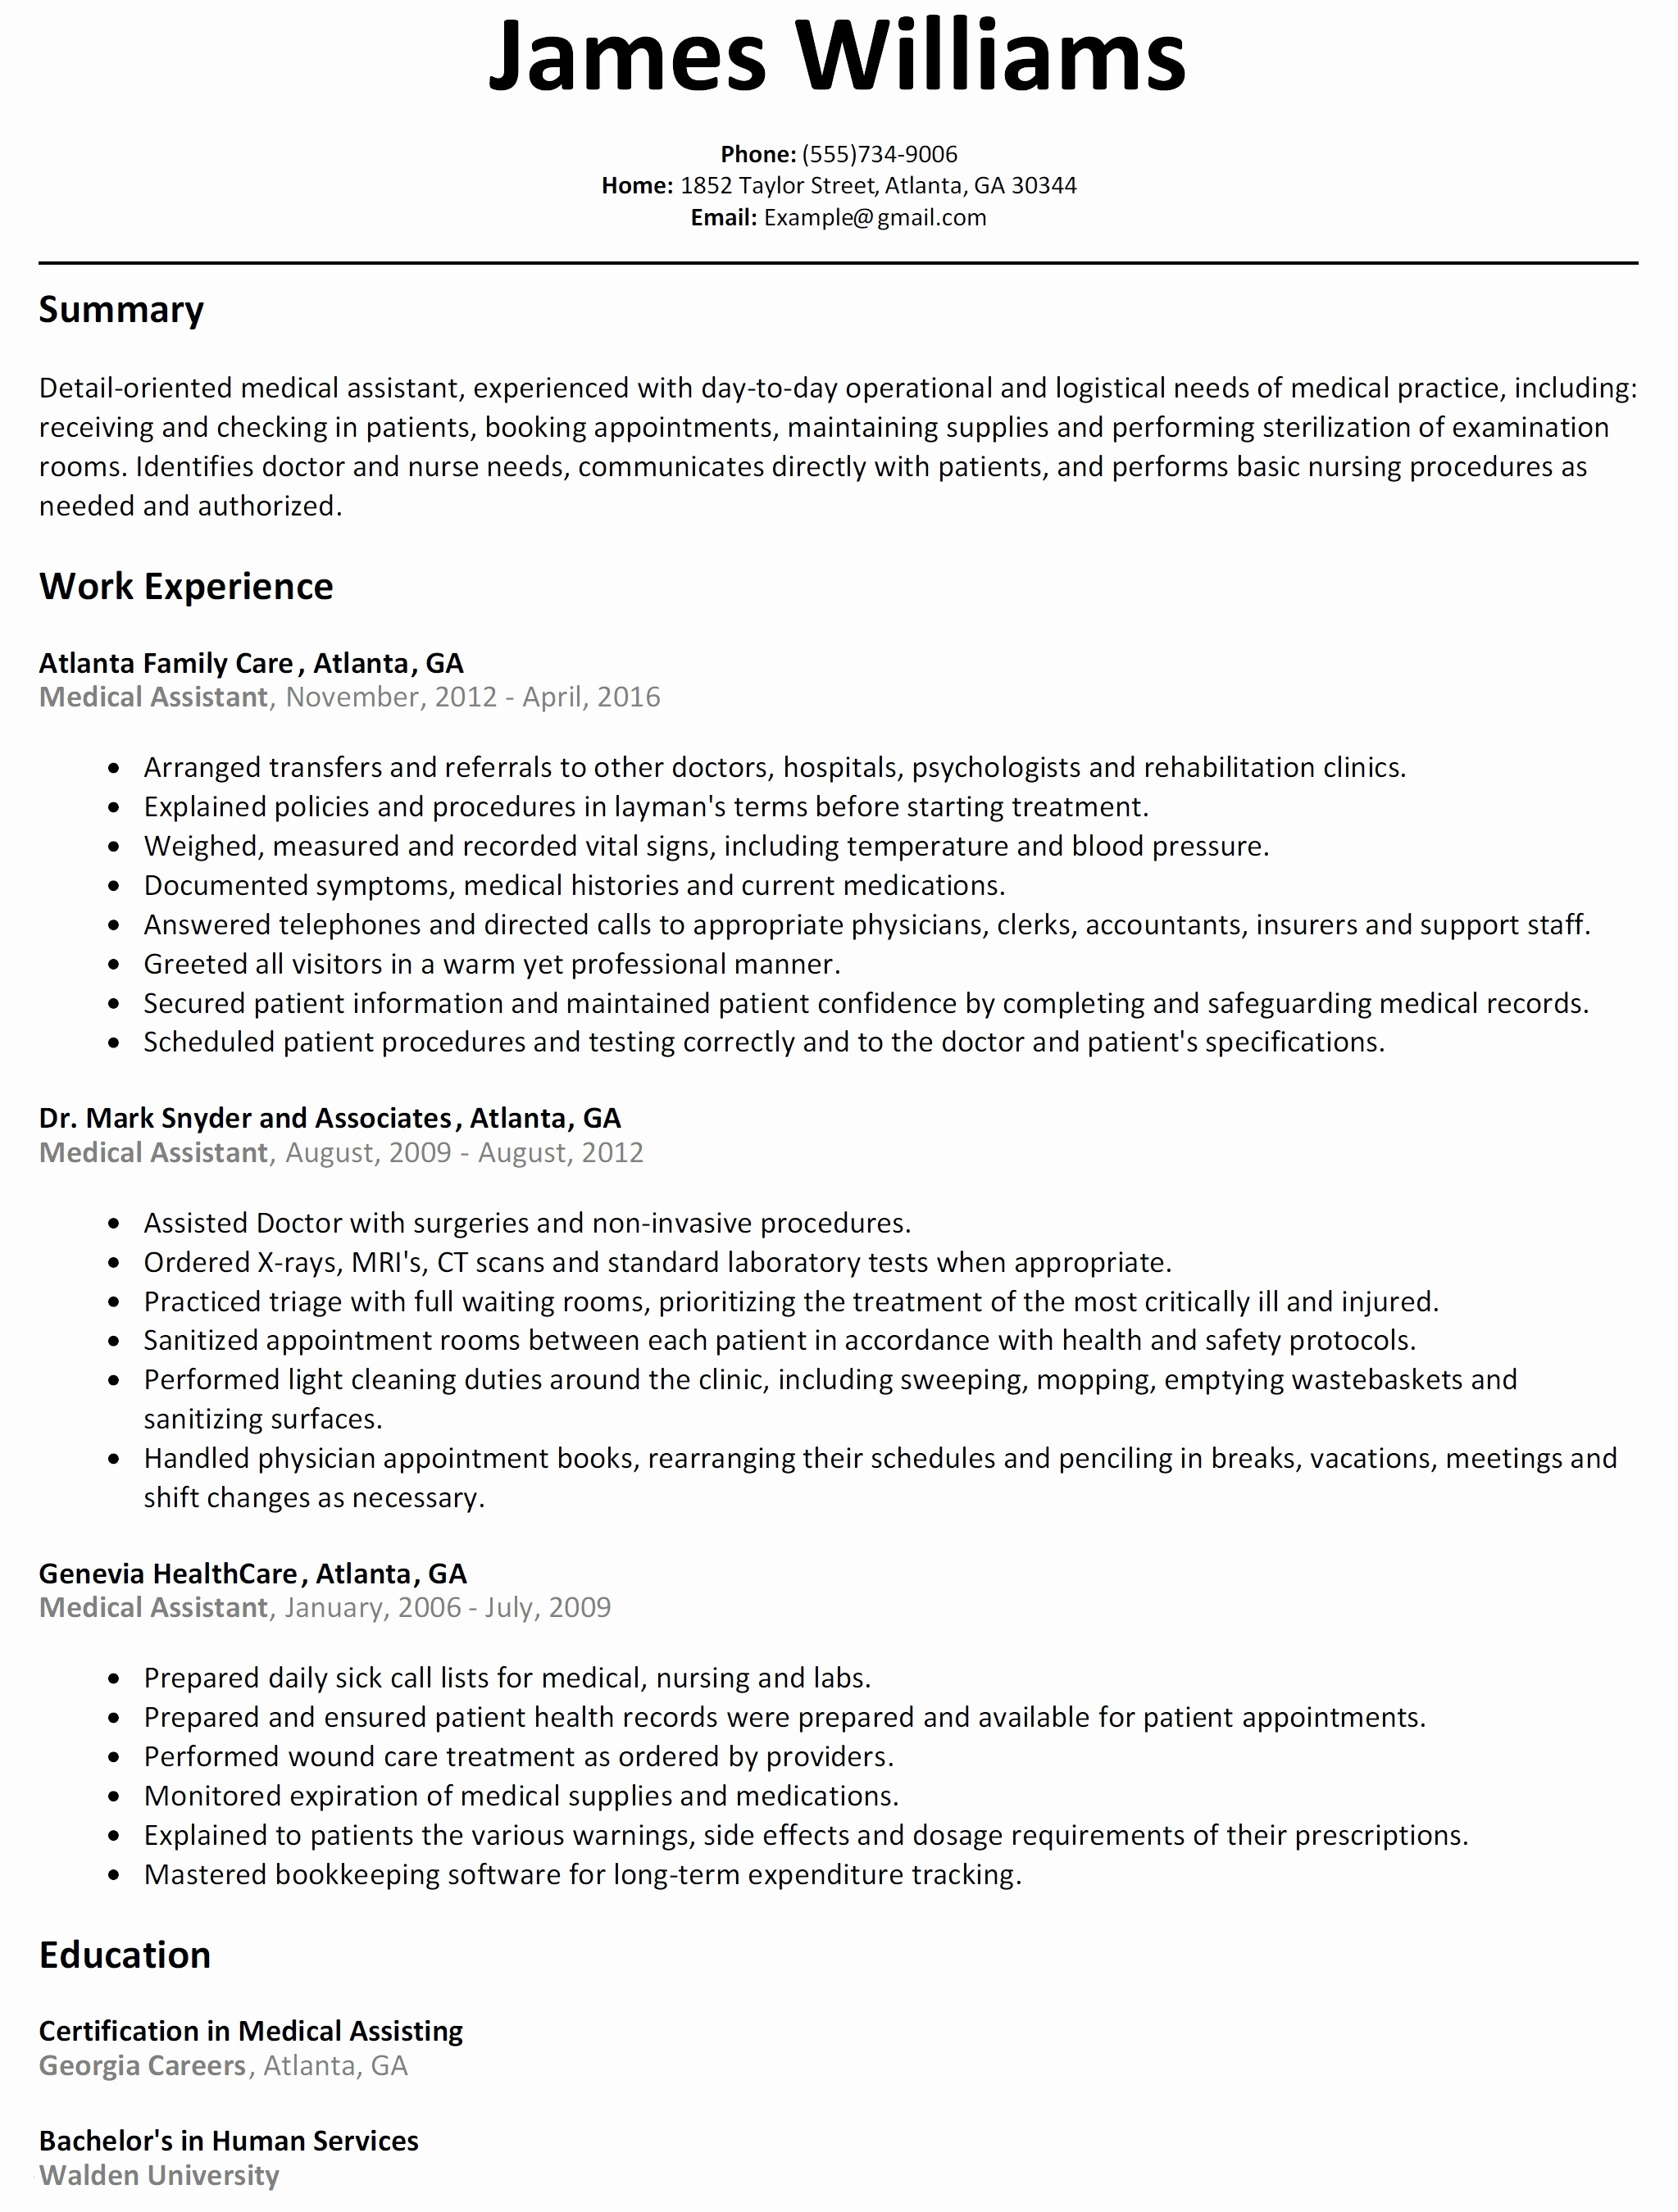 Nurse Practitioner Resume Sample - Call Center Resume Template New Resume Examples Customer Service